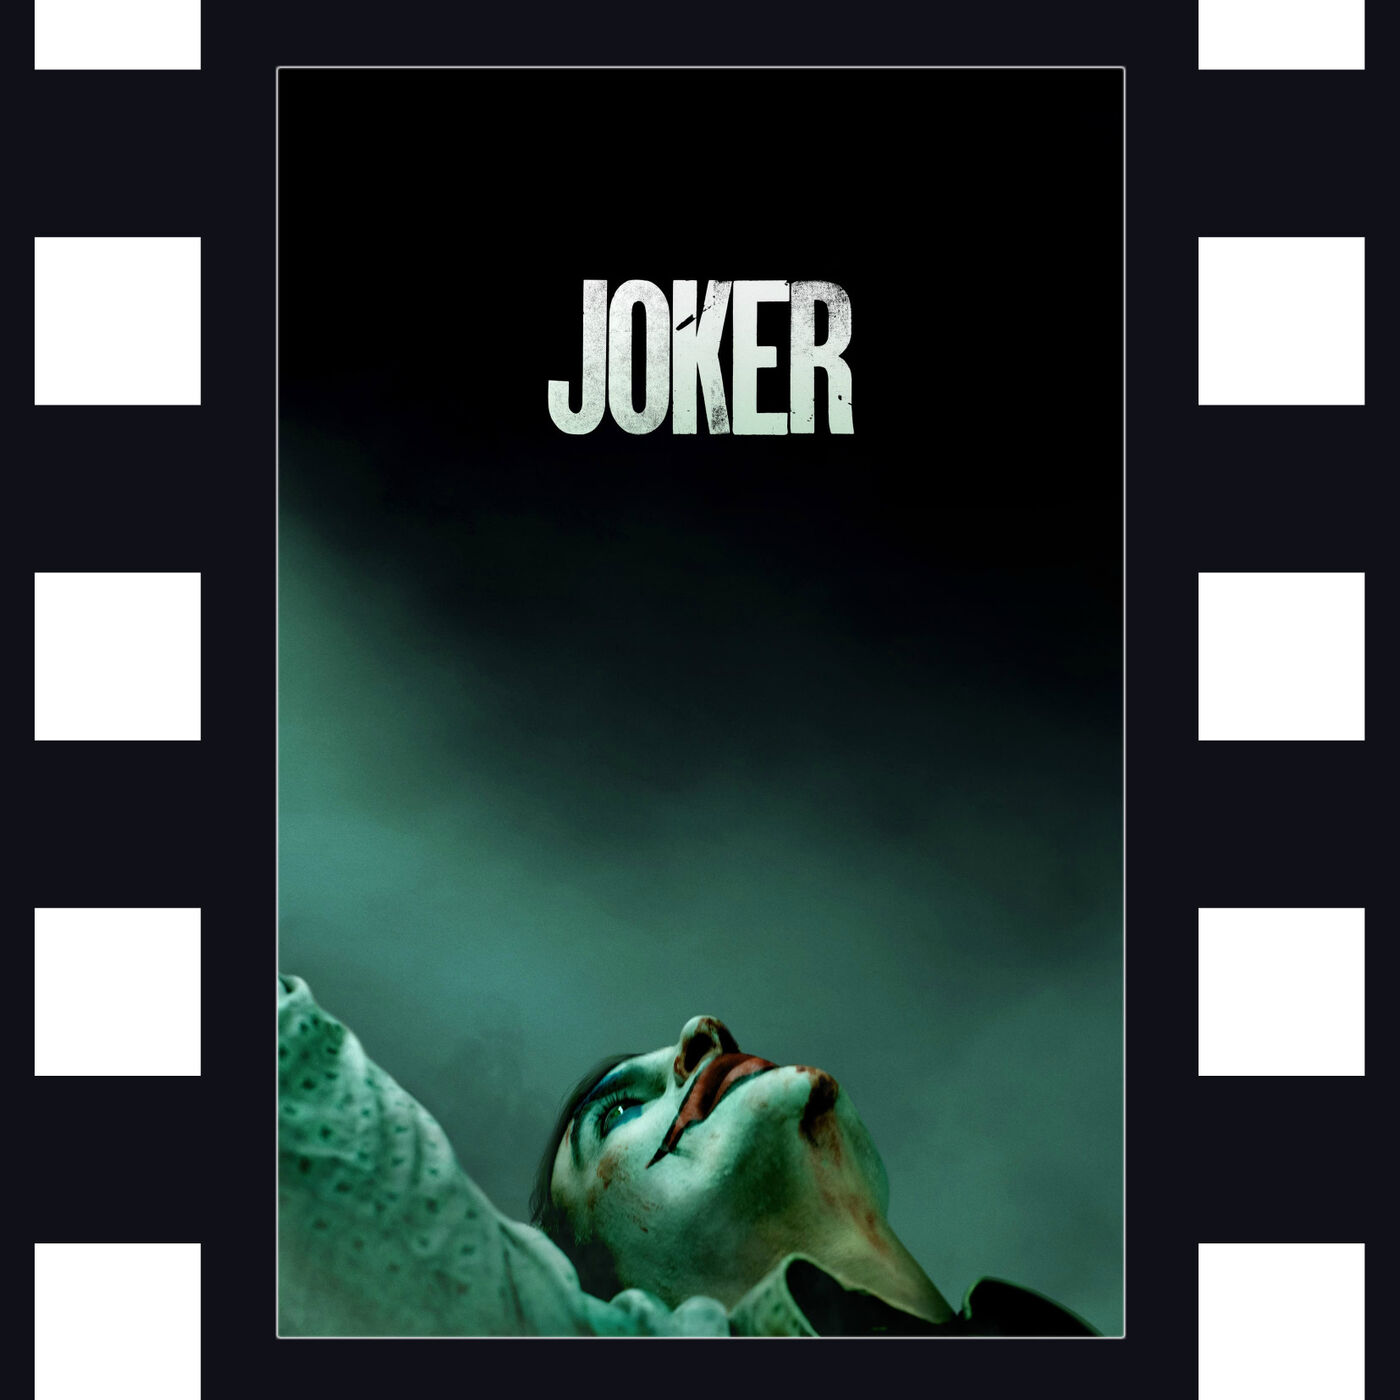 Joker - Dangerously Cathartic